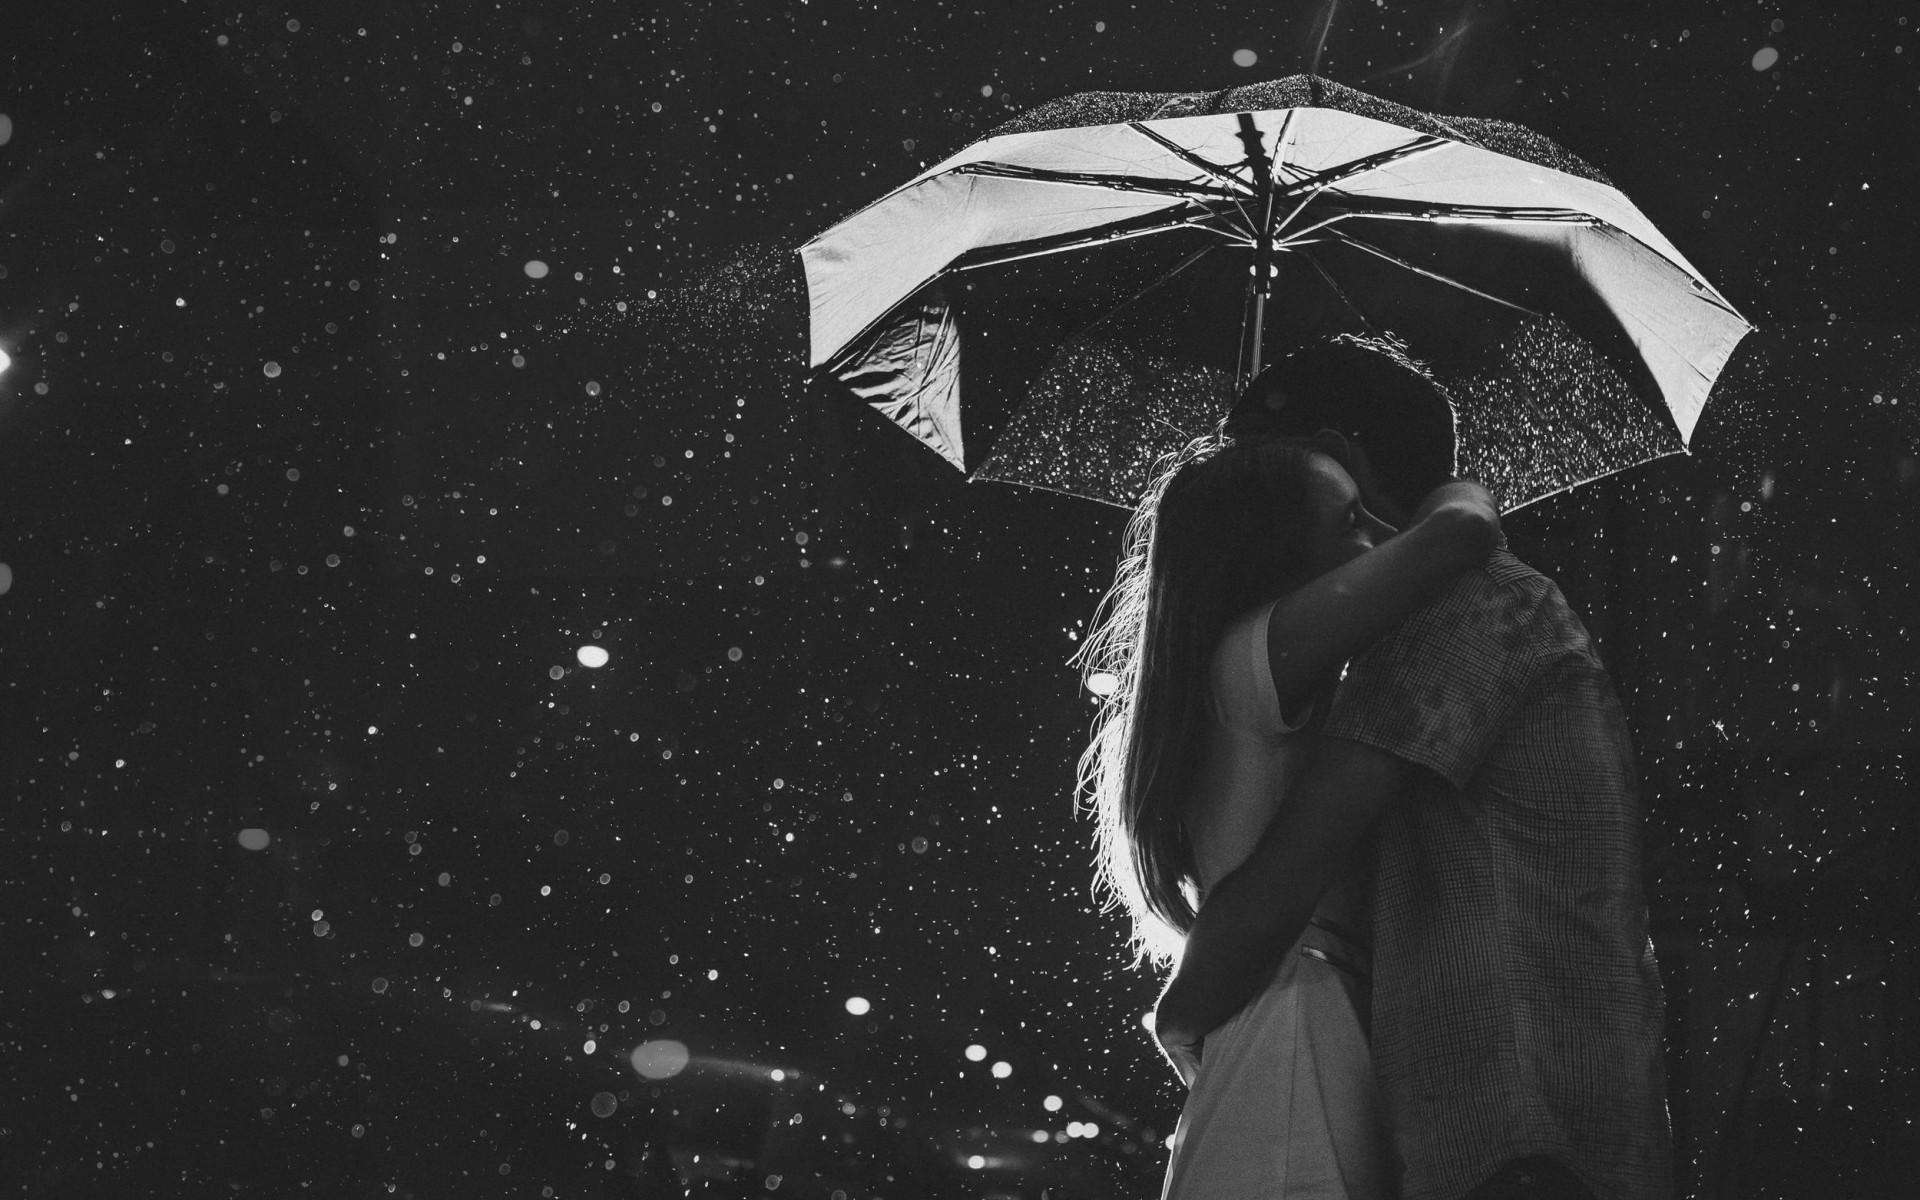 Love Couple In Rain Wallpapers